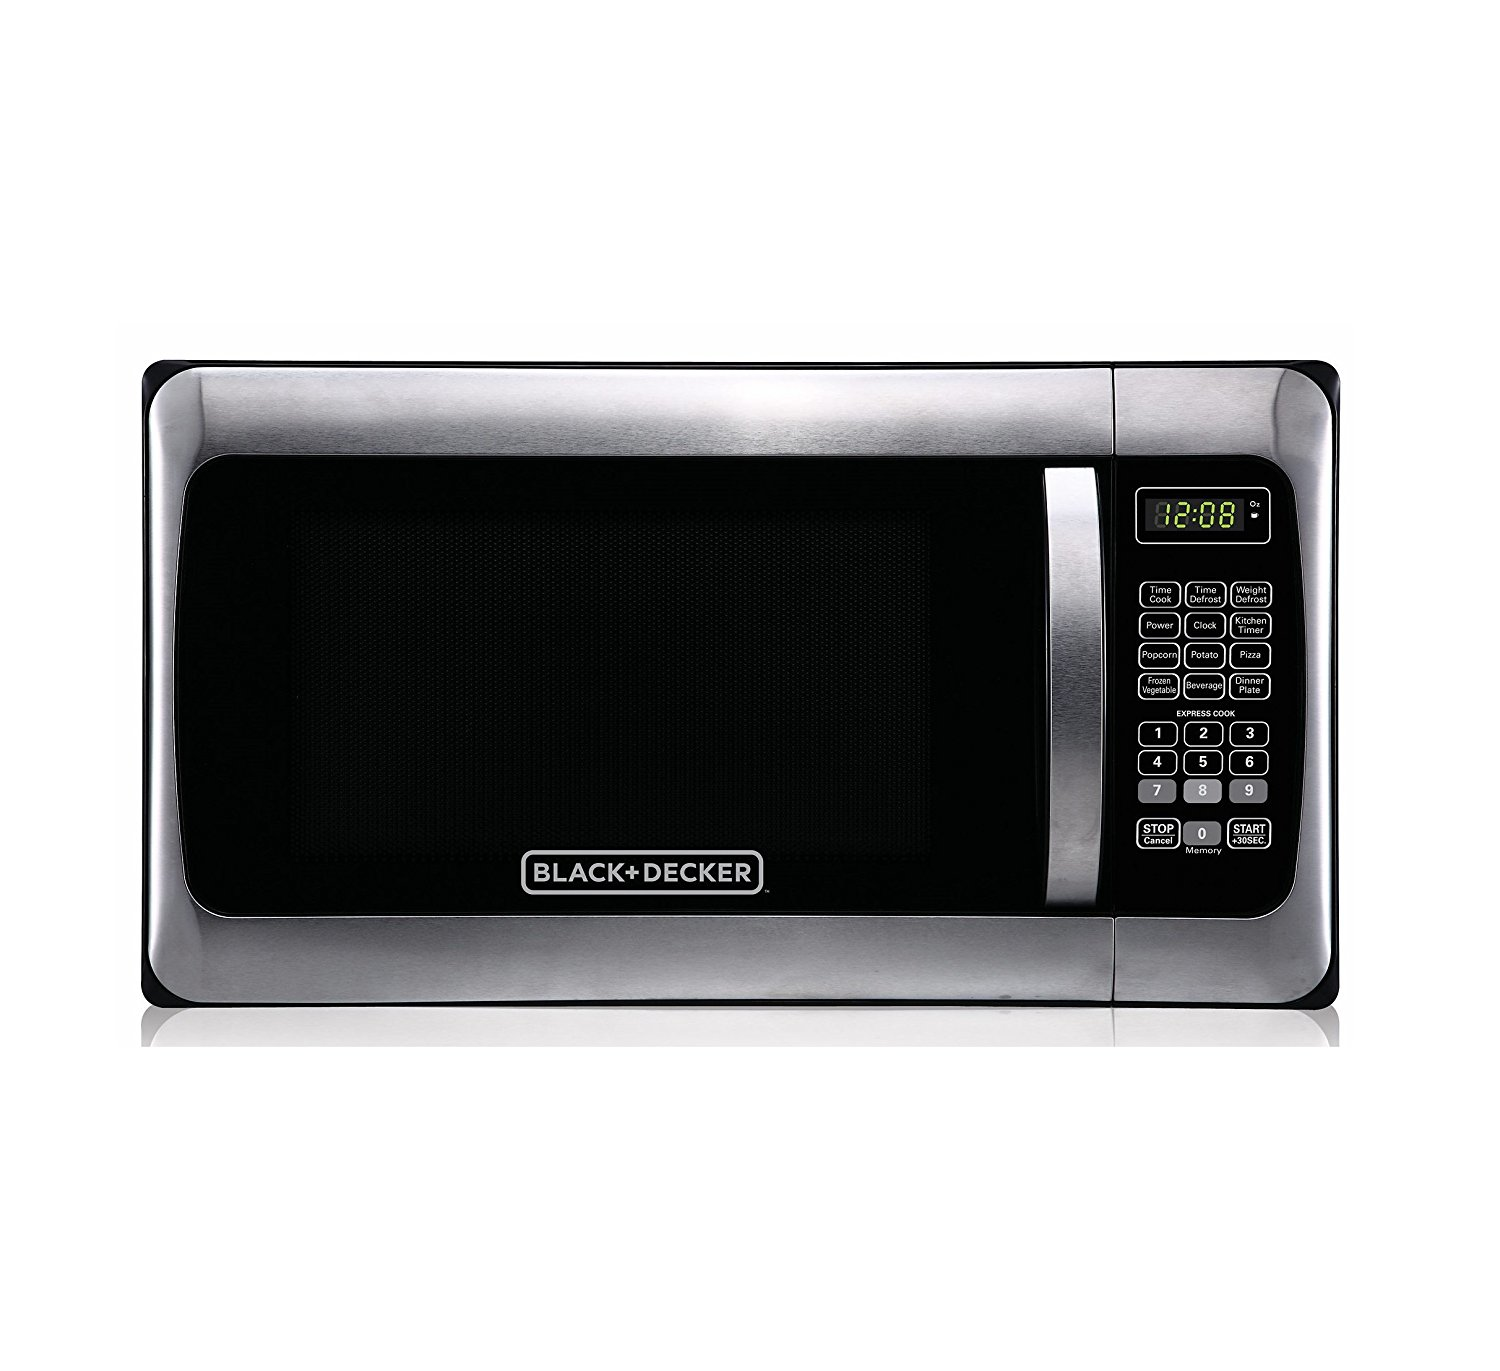 Big W Microwaves Black And Decker 1 1 Cu Ft 1 000w Microwave Stainless Steel